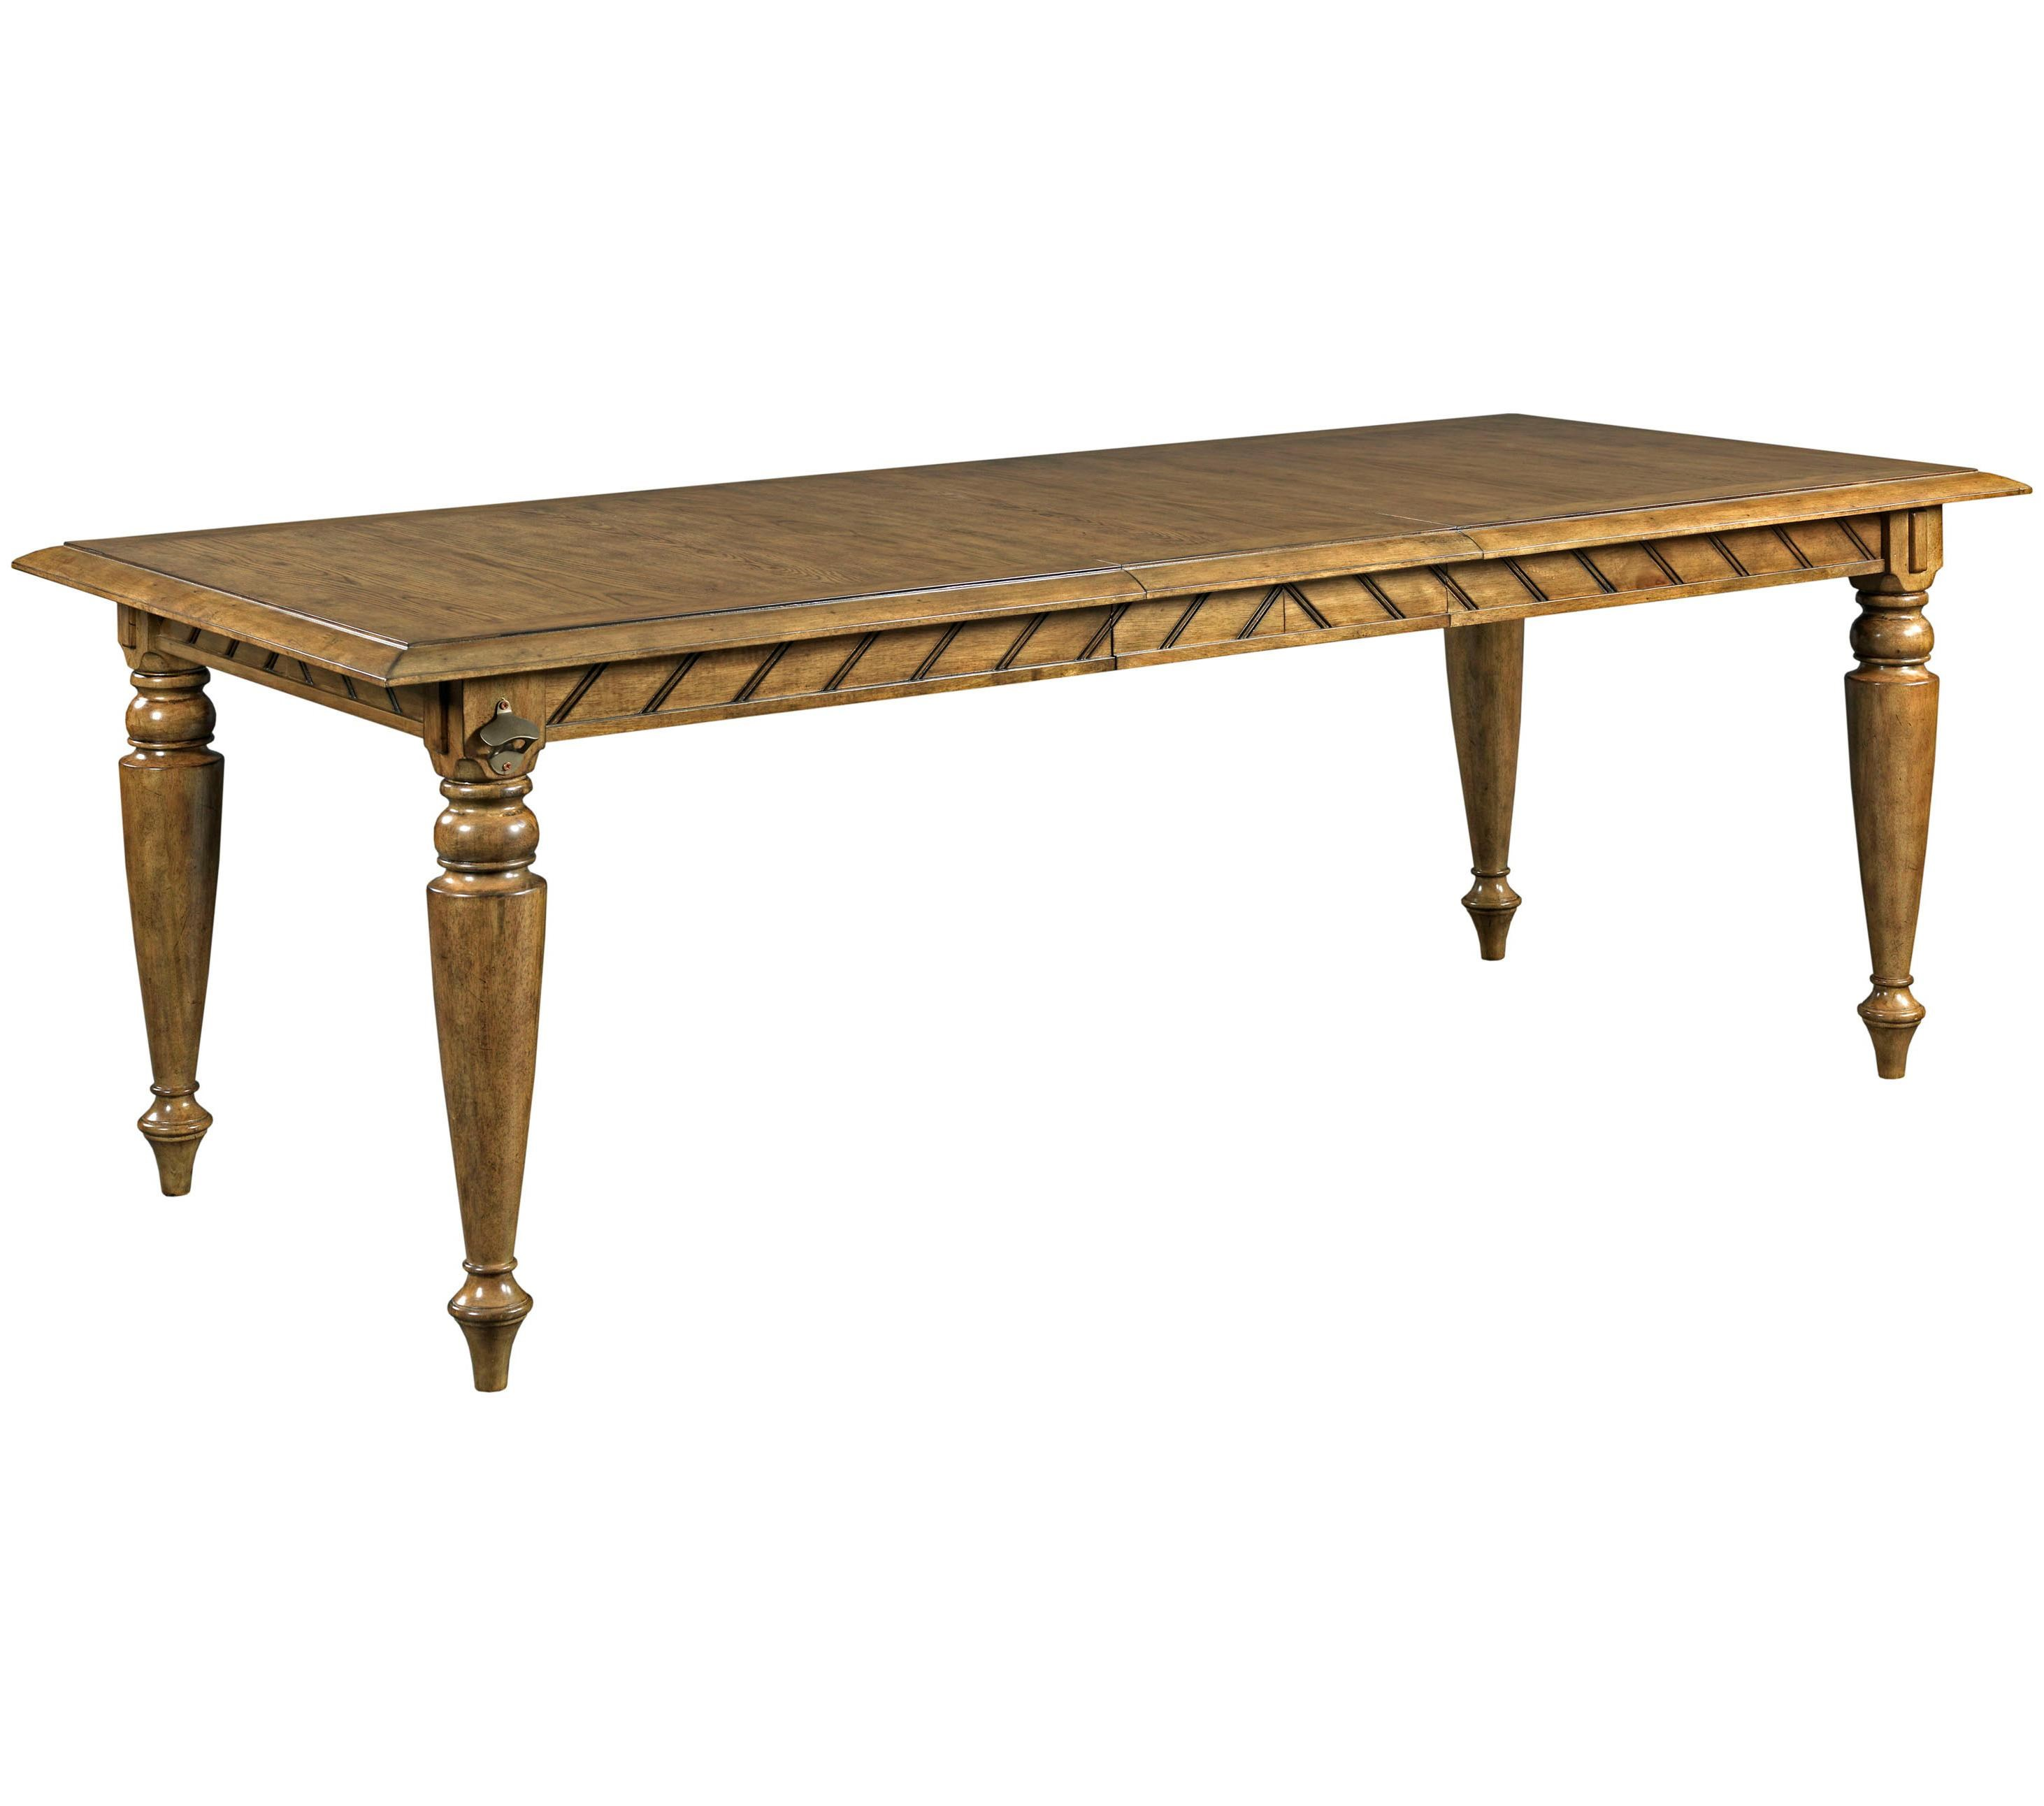 Broyhill Furniture New Vintage Rectangular Chevron Dining Table With Bottle  Opener   Conlinu0027s Furniture   Dining Tables